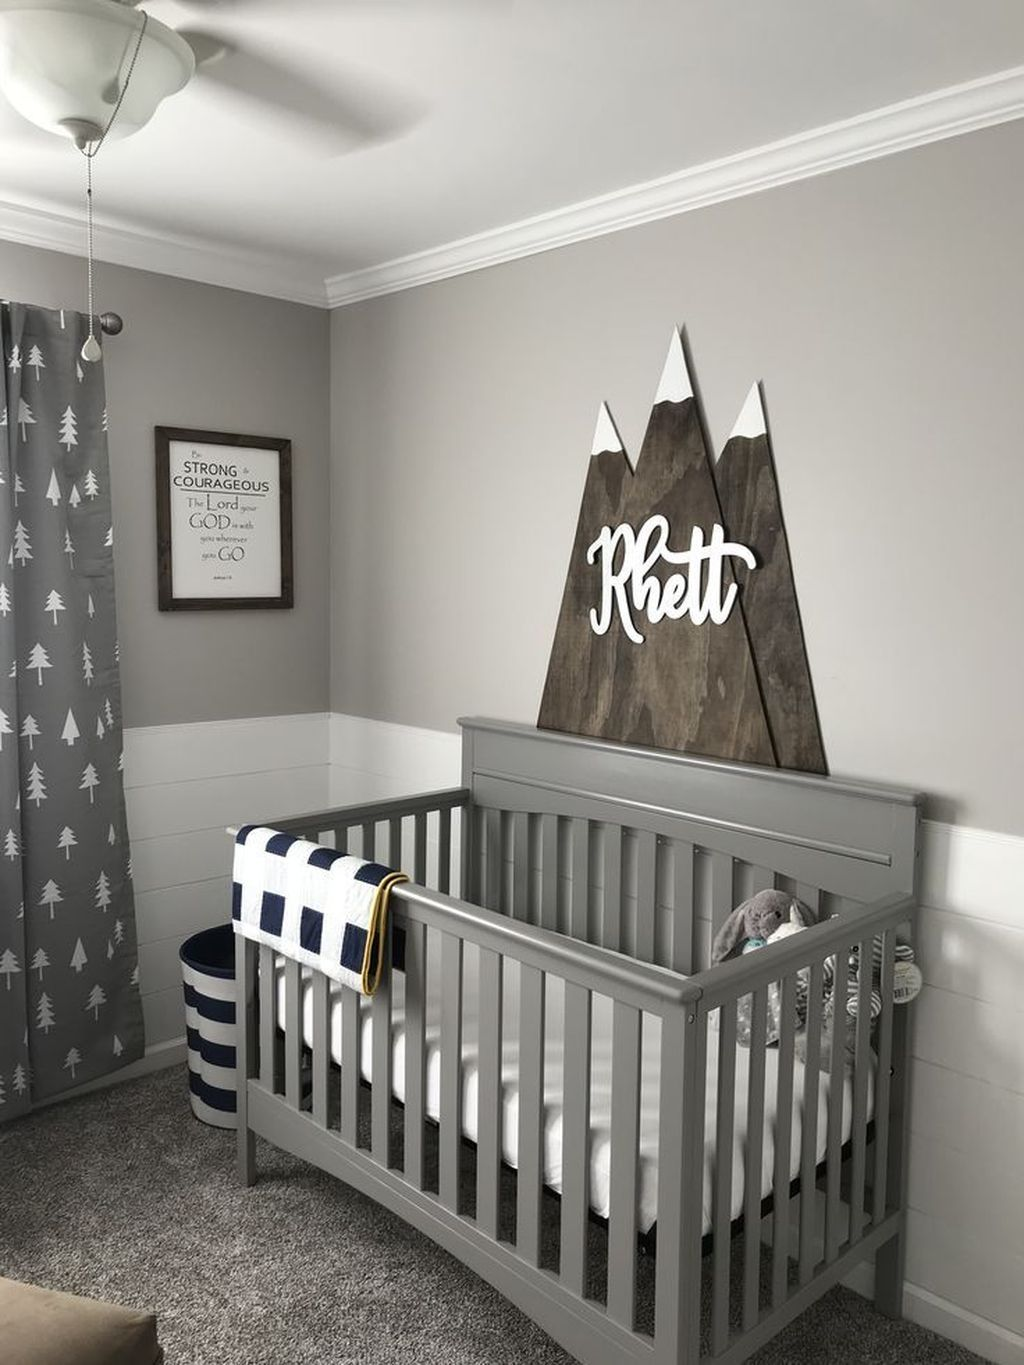 30 Stunning Baby Boy Room Ideas For Baby Decorating A Room Is A Great Fun For People Especially If They Ar Nursery Baby Room Baby Boy Rooms Baby Room Design